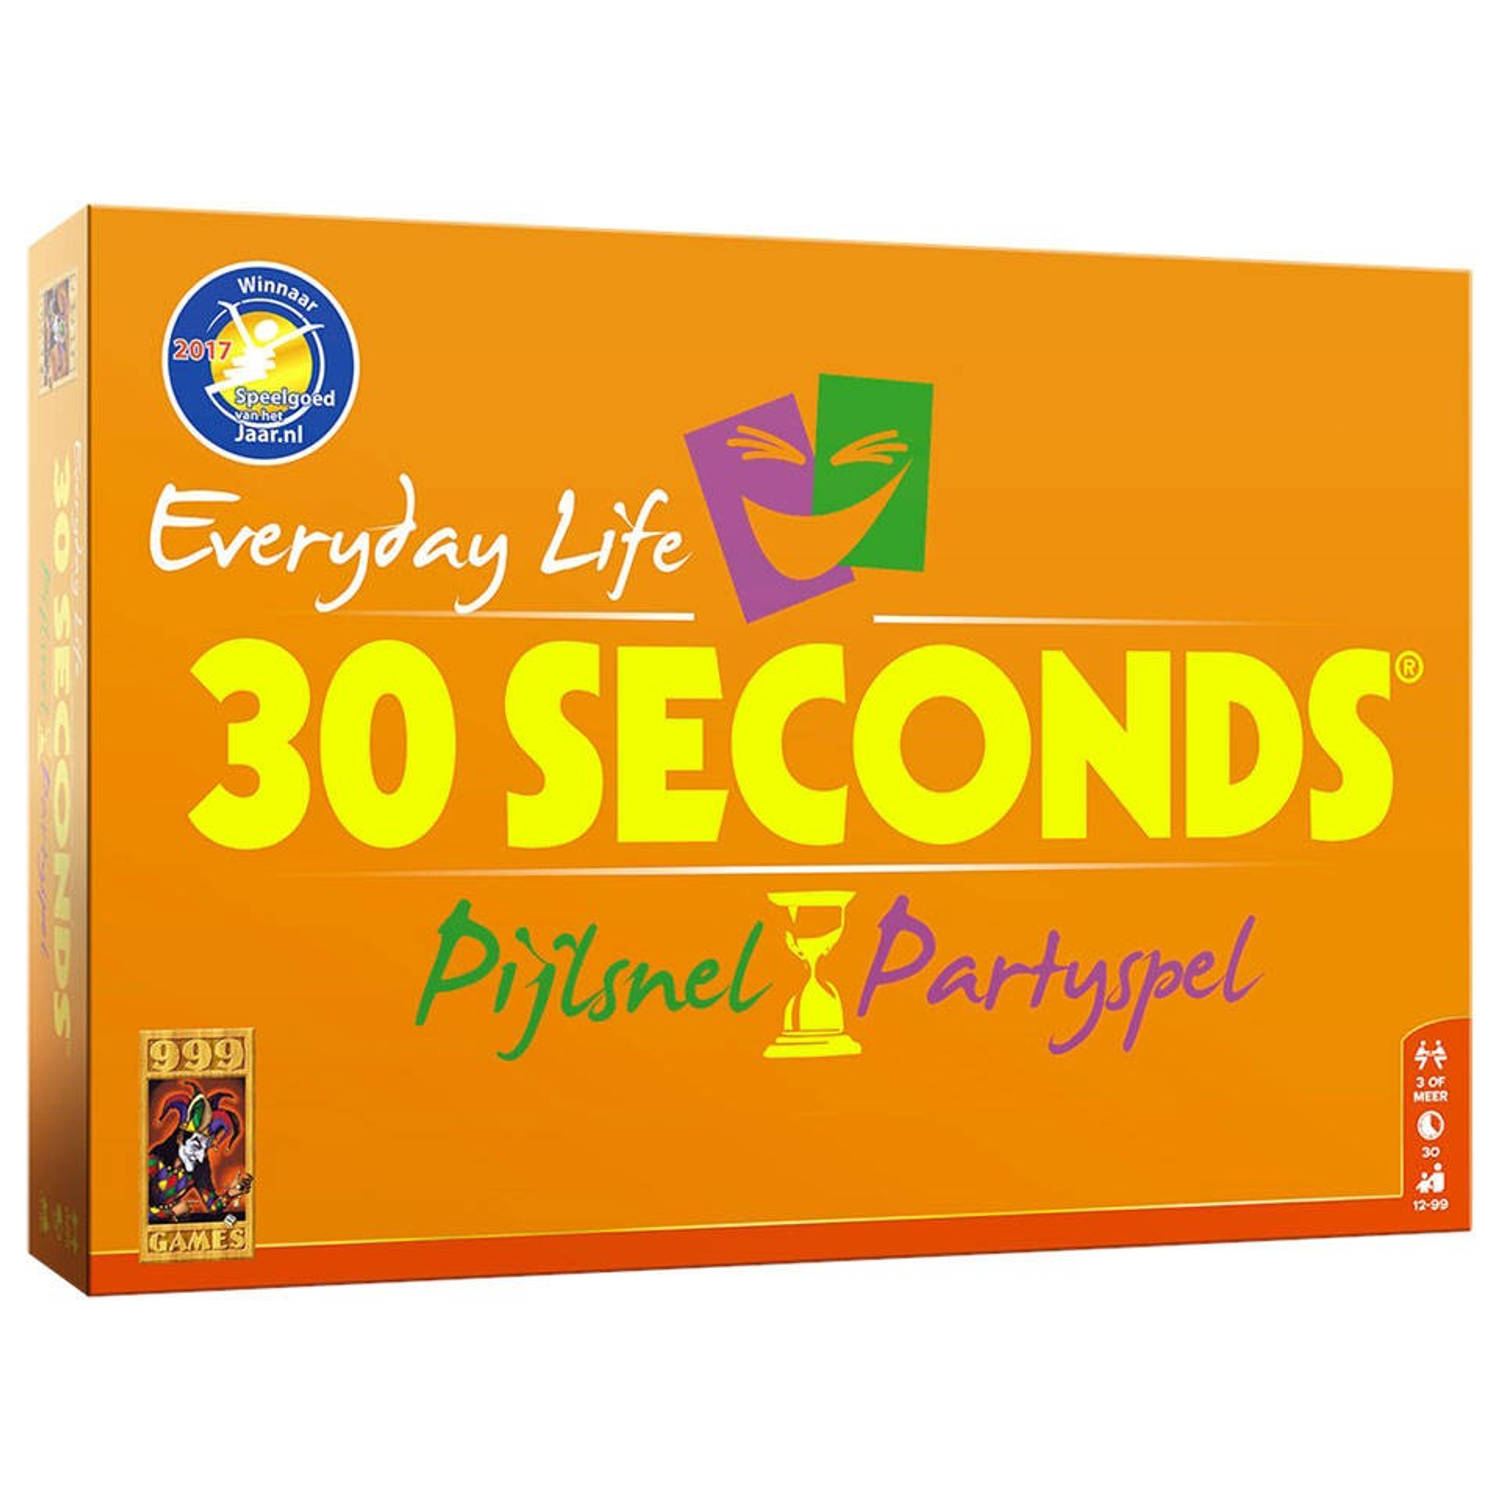 Korting 30 Seconds Everyday Life